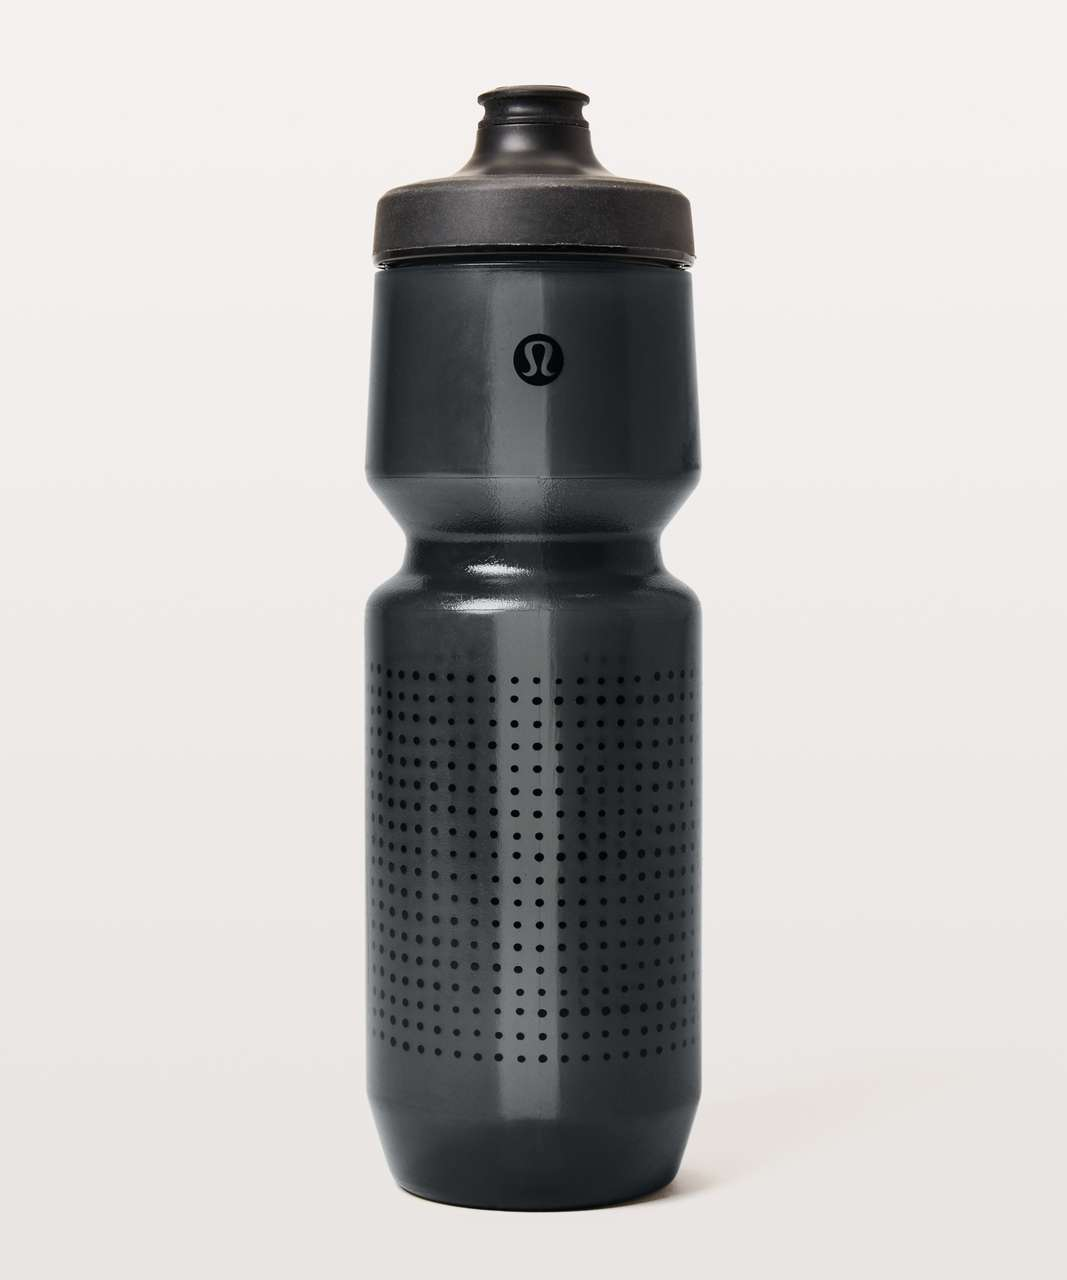 Lululemon Purist Cycling Water Bottle - Wonky Dot